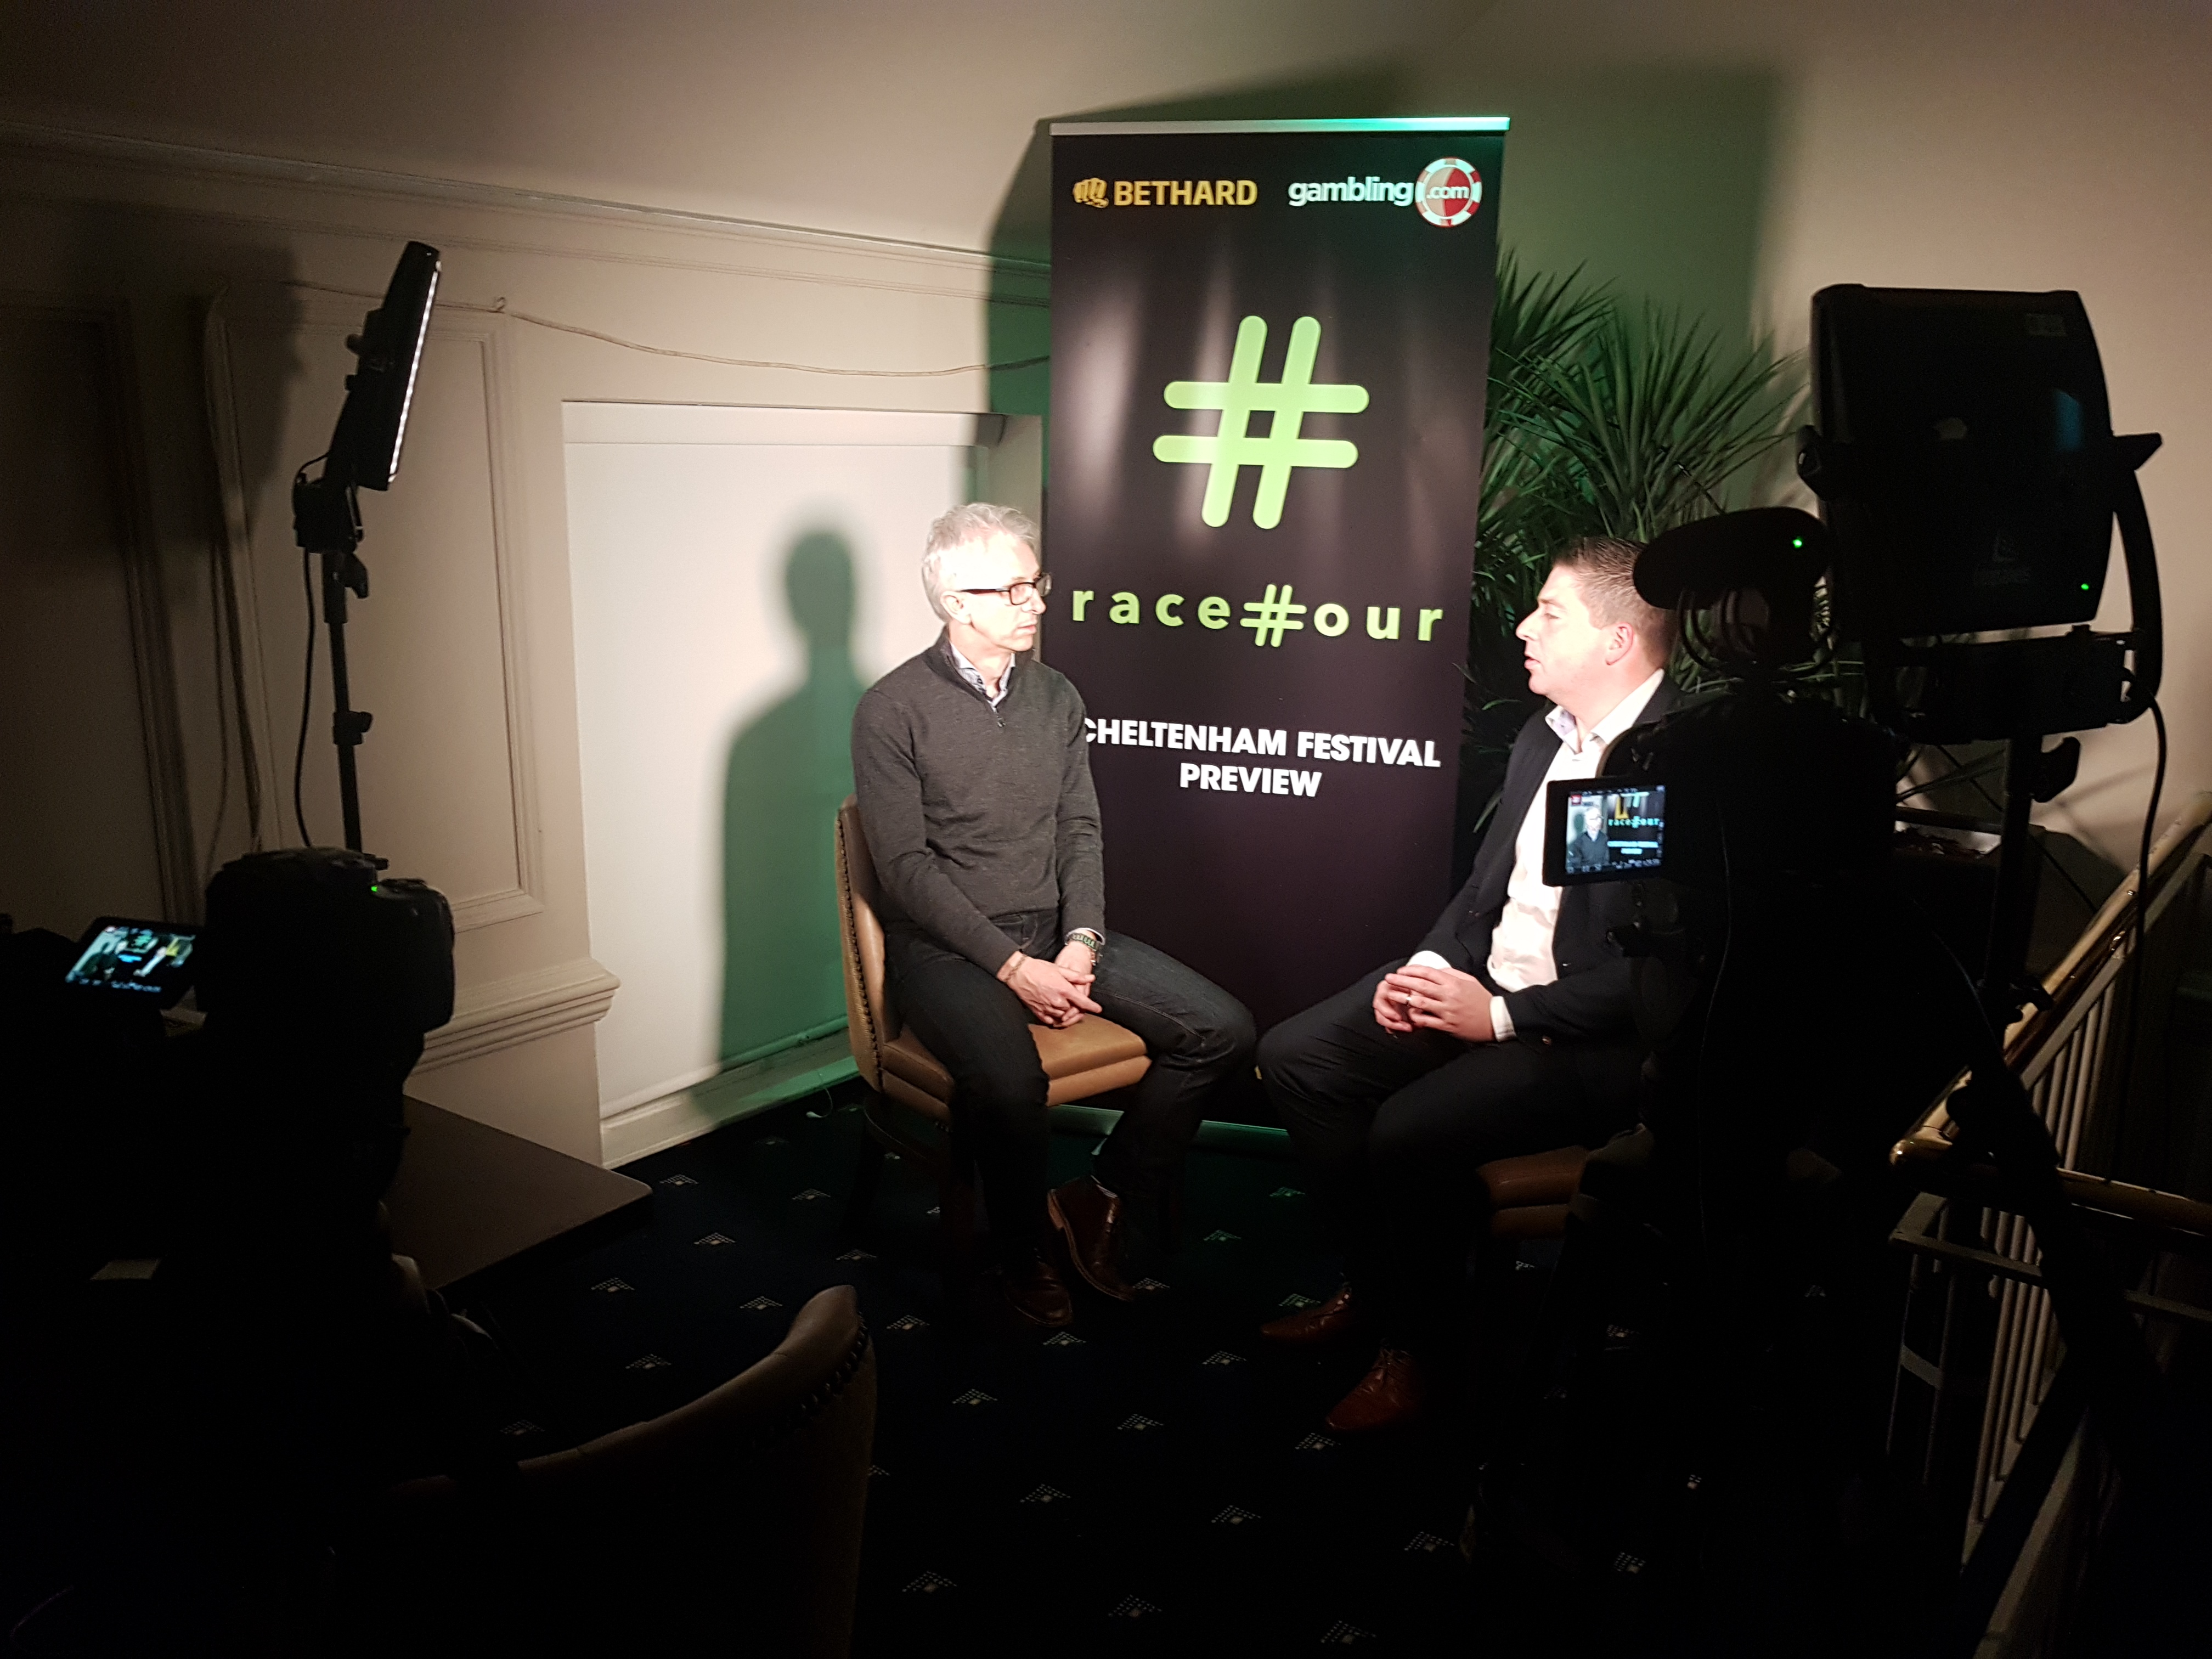 Racehour Cheltenham Preview Night Live Event Recording Interview Corner